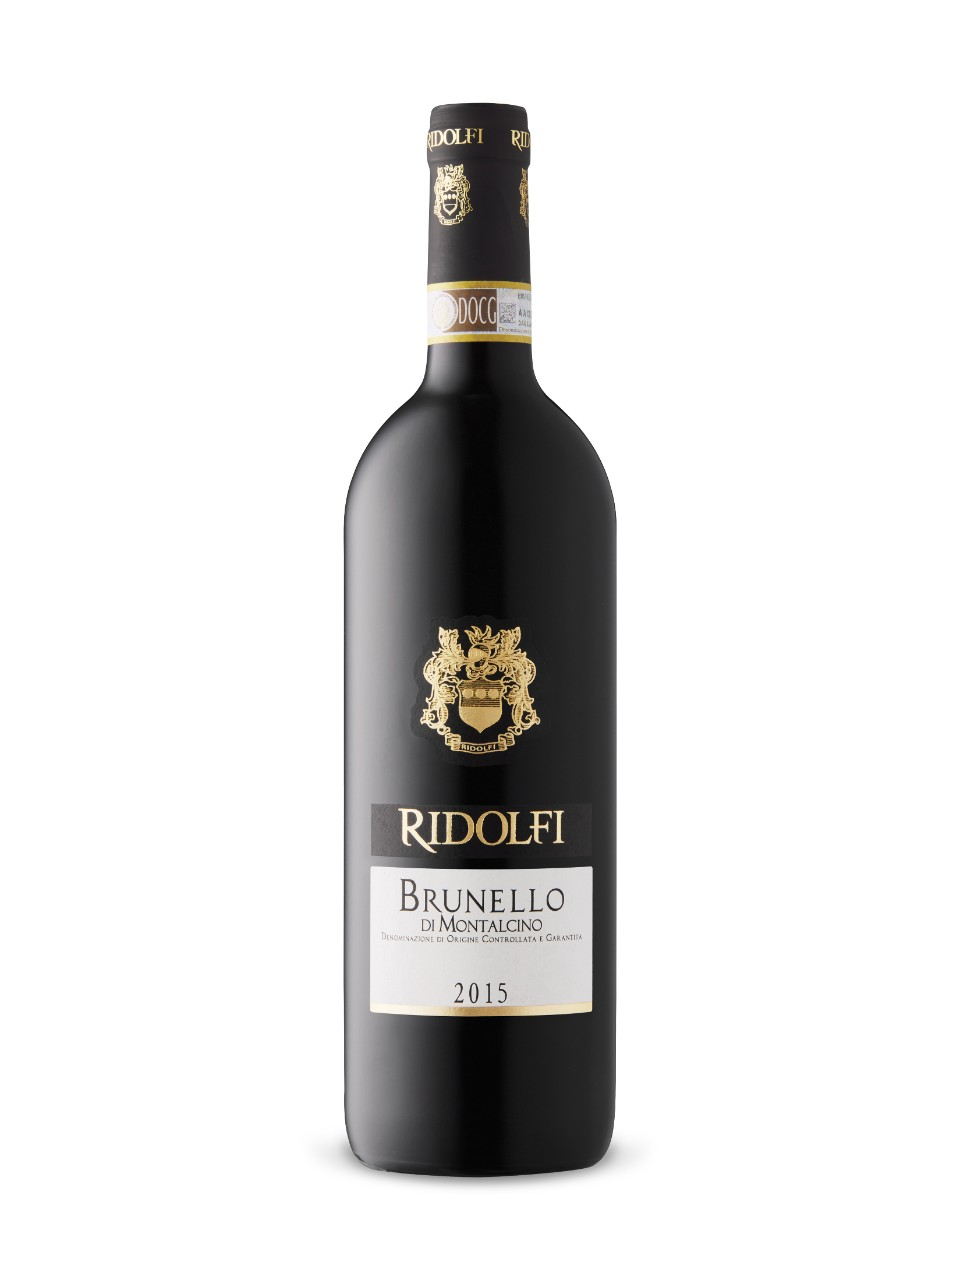 Ridolfi Brunello di Montalcino 2015 from LCBO